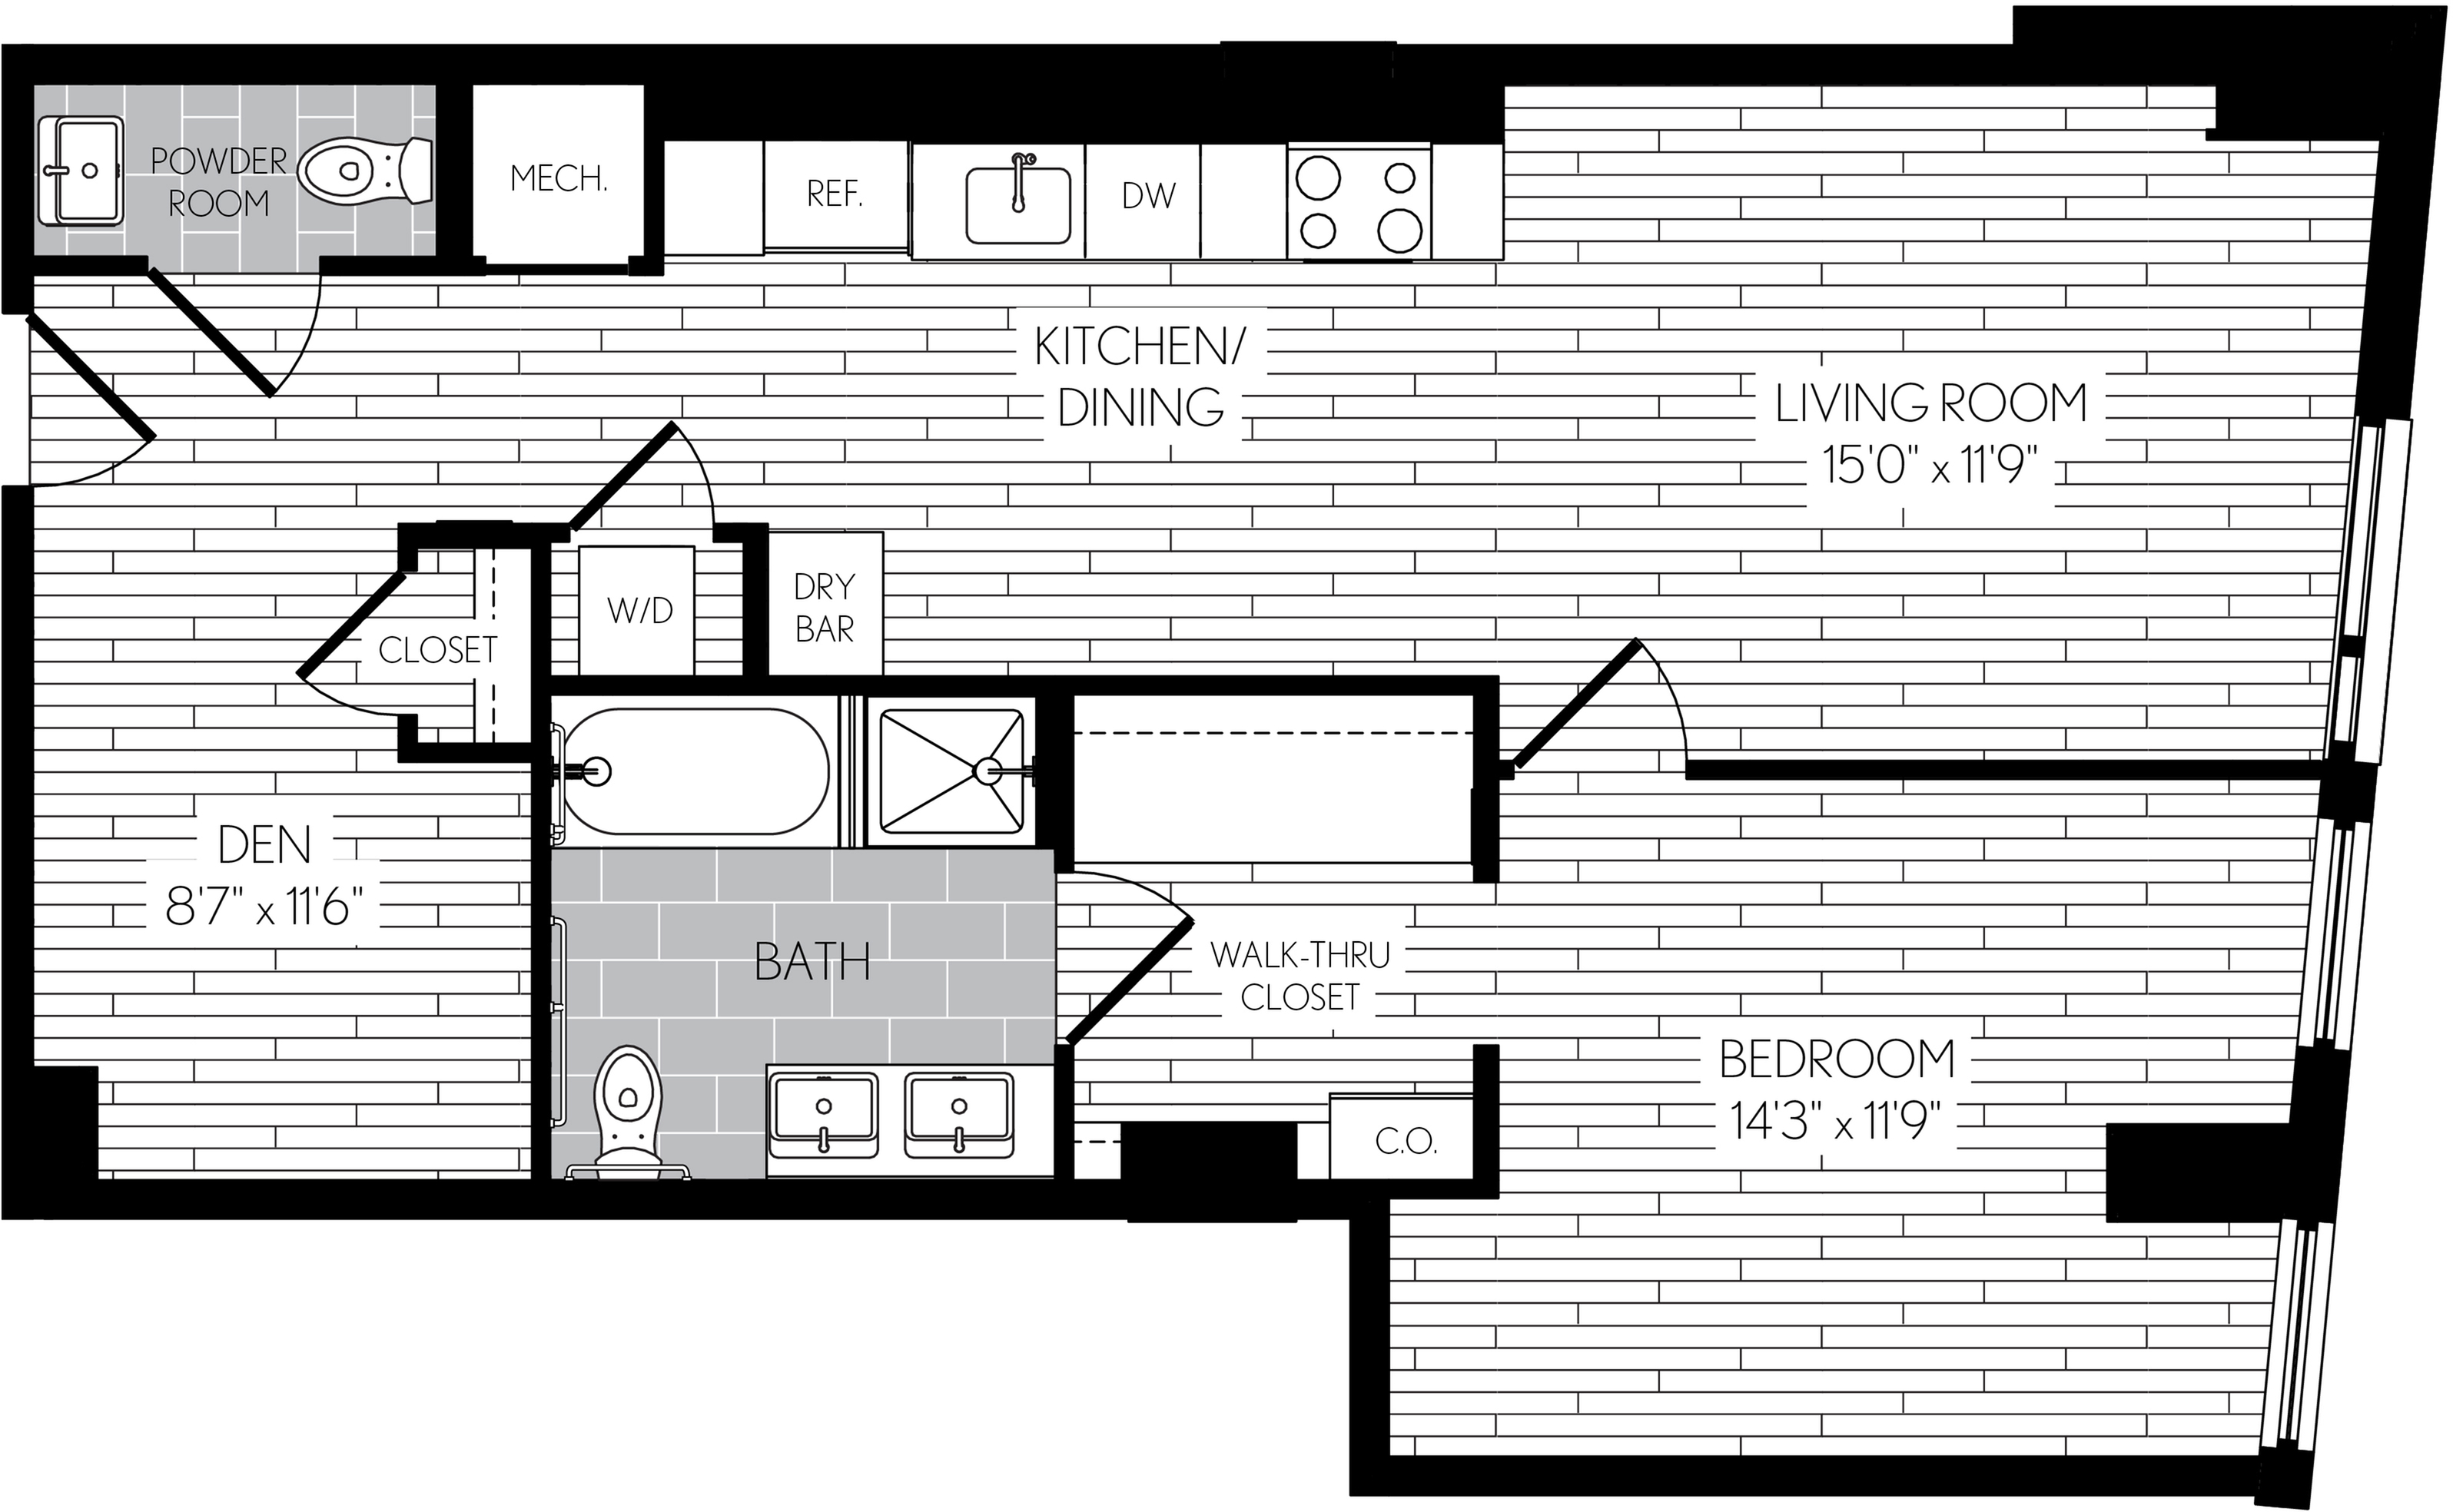 890 square foot one bedroom one and a half bath with den apartment floorplan image